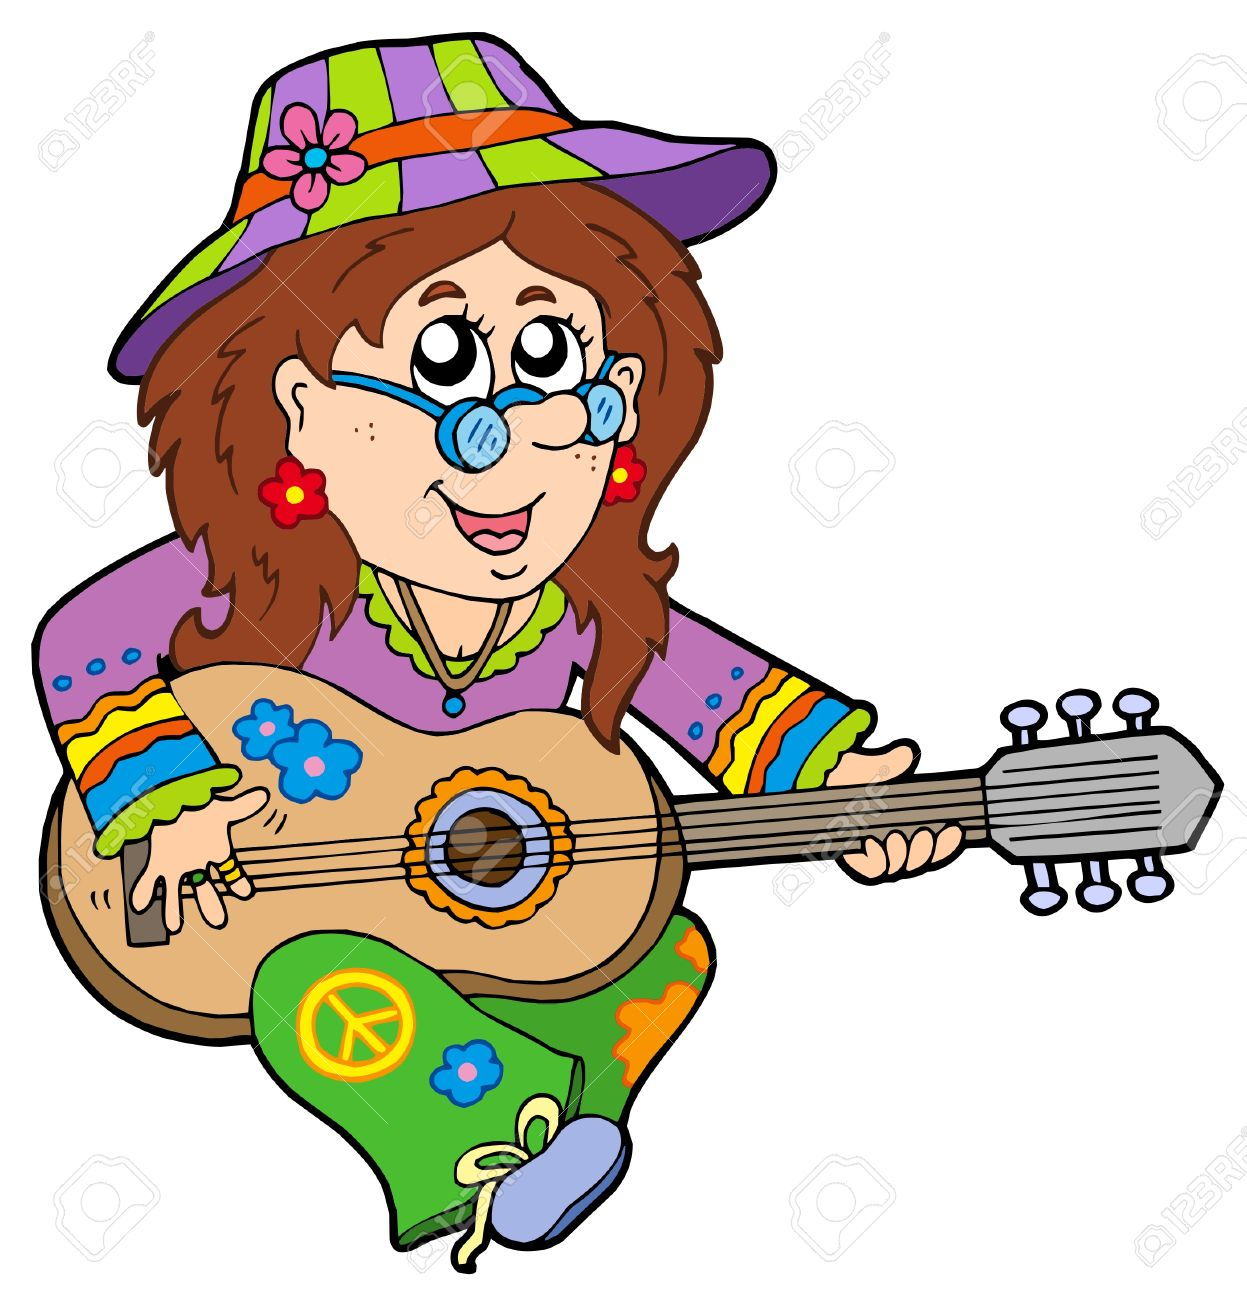 Hippie Guitar Player - Vector Illustration. Royalty Free Cliparts ...